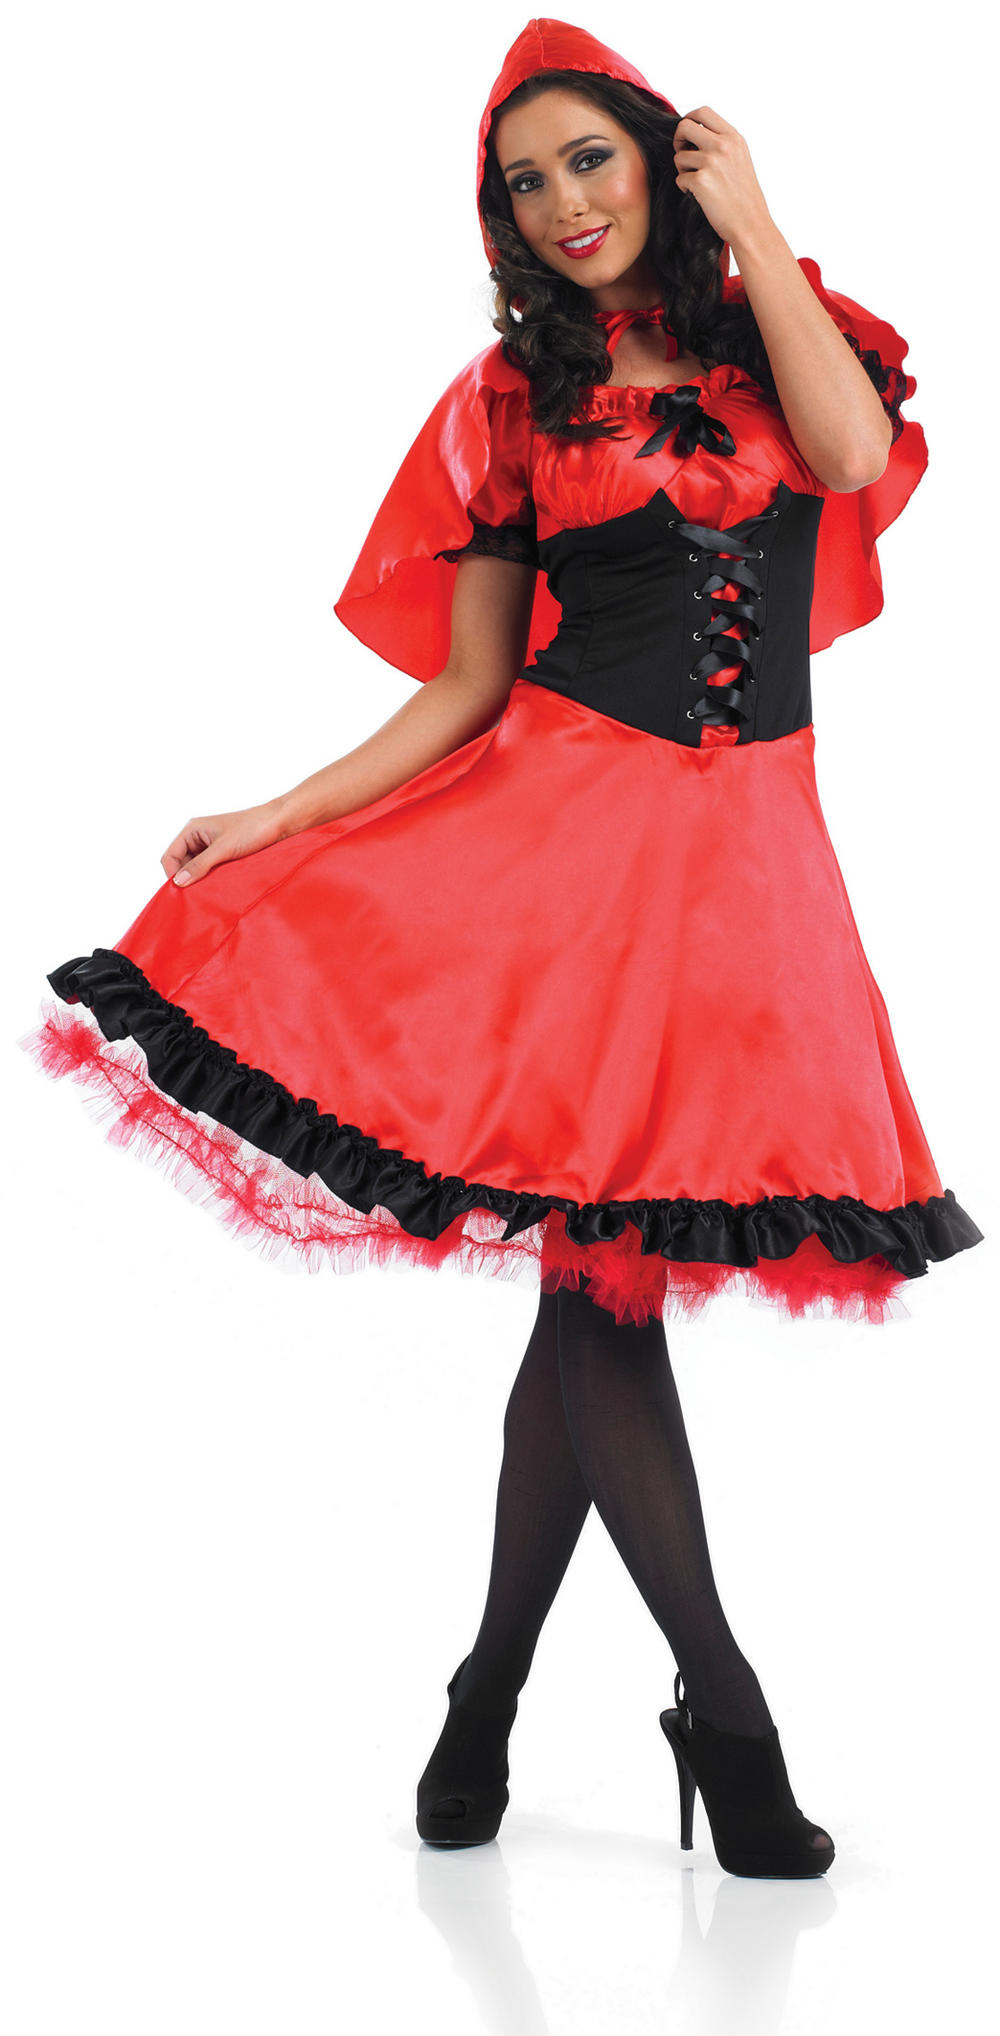 Red Riding Hood Longer Length Dress